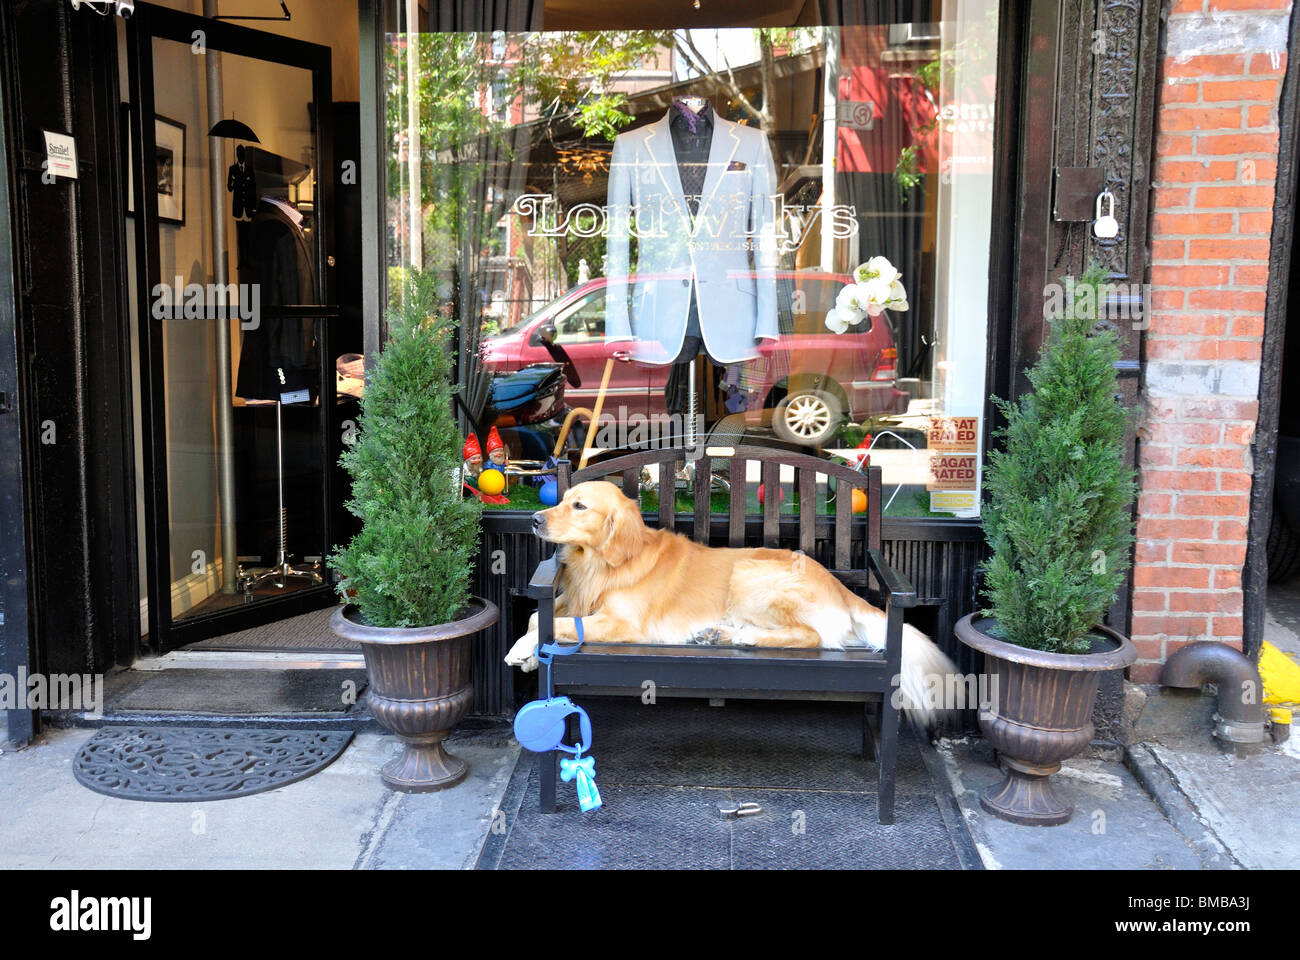 Dog, a golden retriever, relaxing on a bench in front of men's fashion shop on Mott Street in New York City - Stock Image